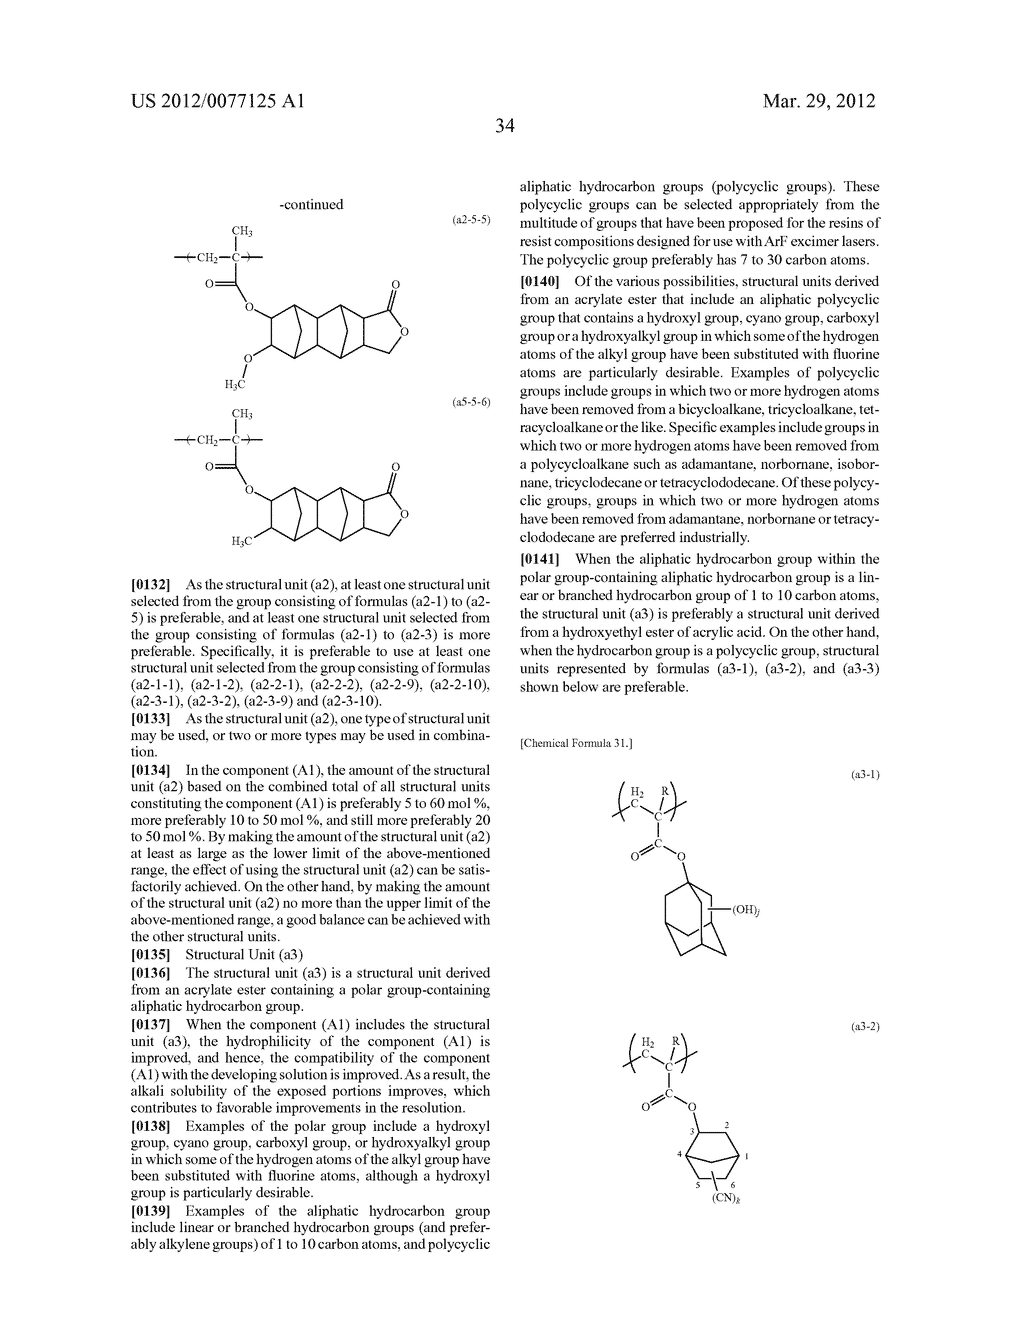 RESIST COMPOSITION FOR IMMERSION EXPOSURE, METHOD OF FORMING RESIST     PATTERN USING THE SAME, AND FLUORINE-CONTAINING COMPOUND - diagram, schematic, and image 36